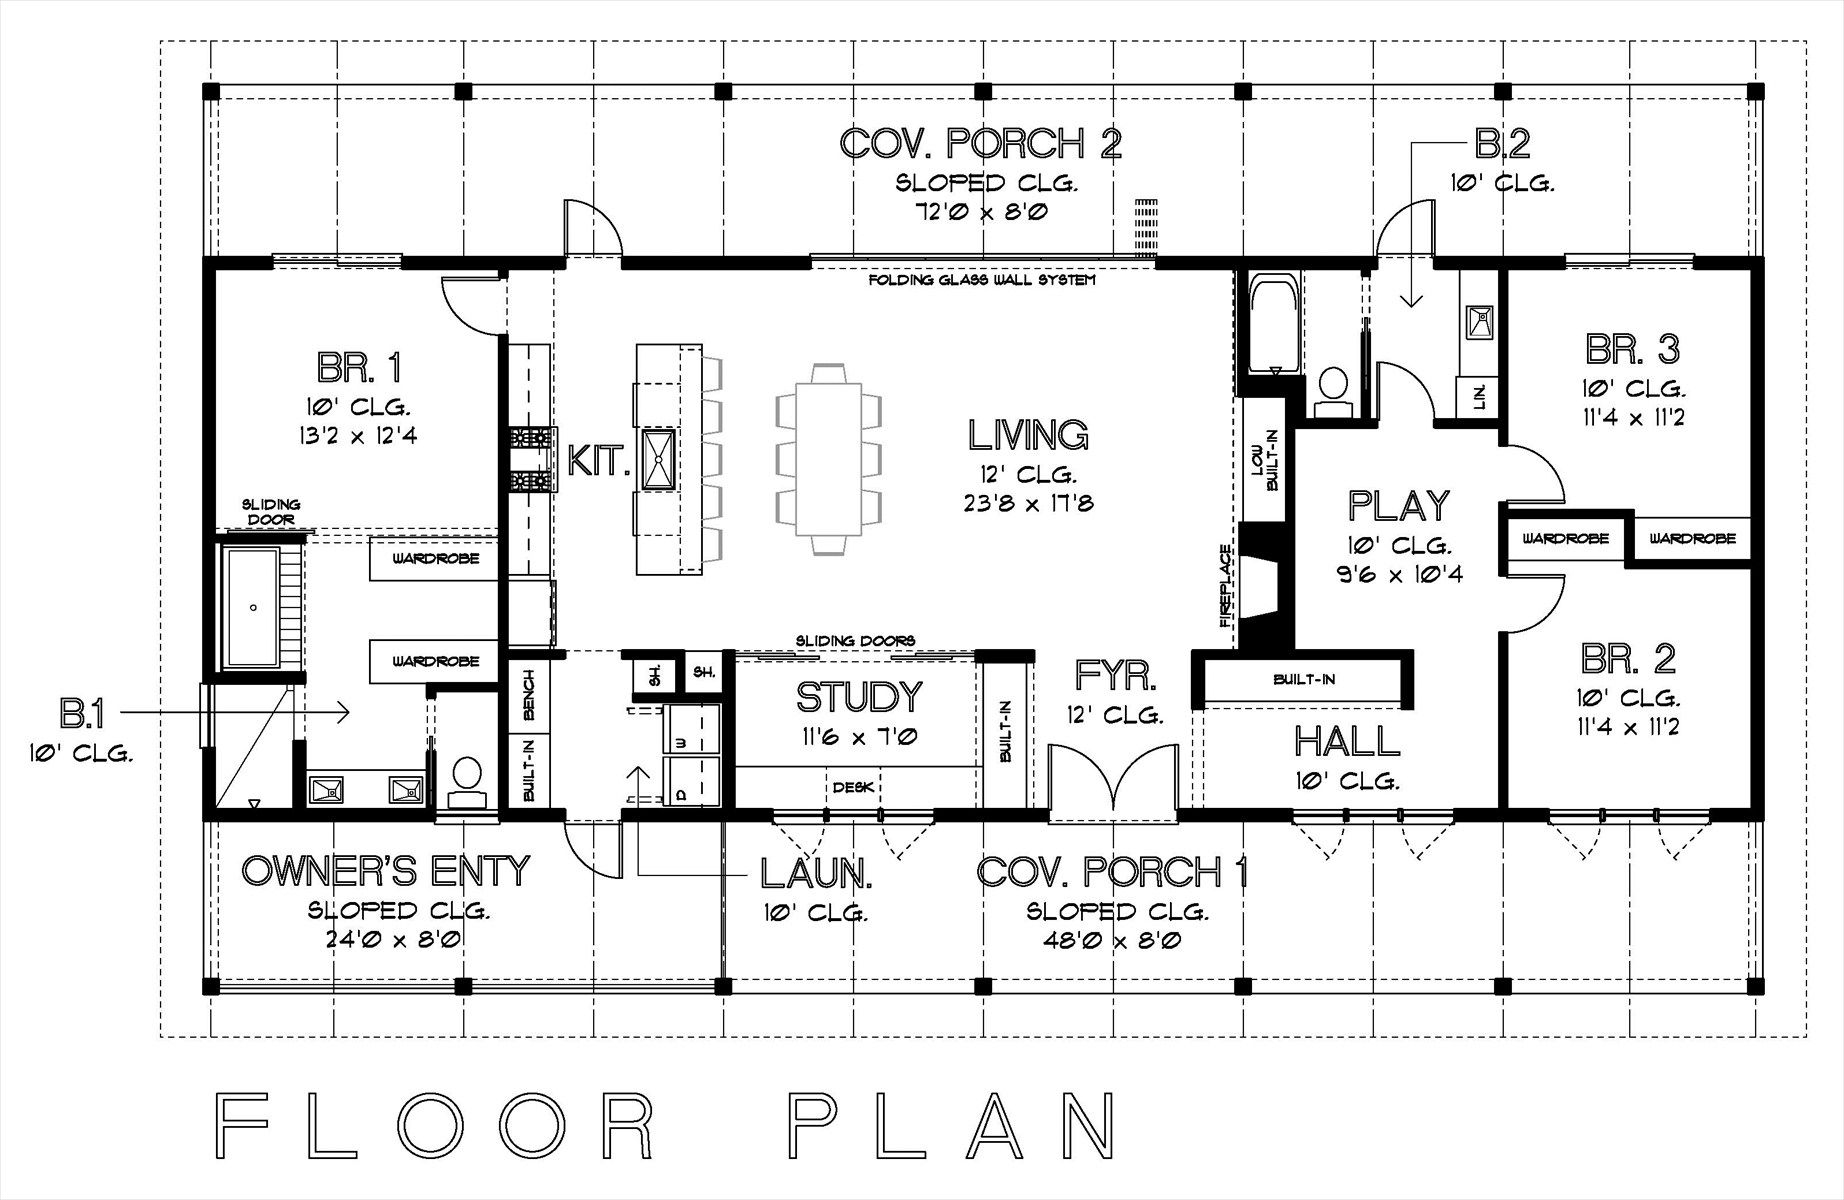 Ranch Style House Plan 3 Beds 2 Baths 1872 Sq Ft Plan 449 16 Rectangle House Plans Floor Plans Ranch Ranch Style House Plans